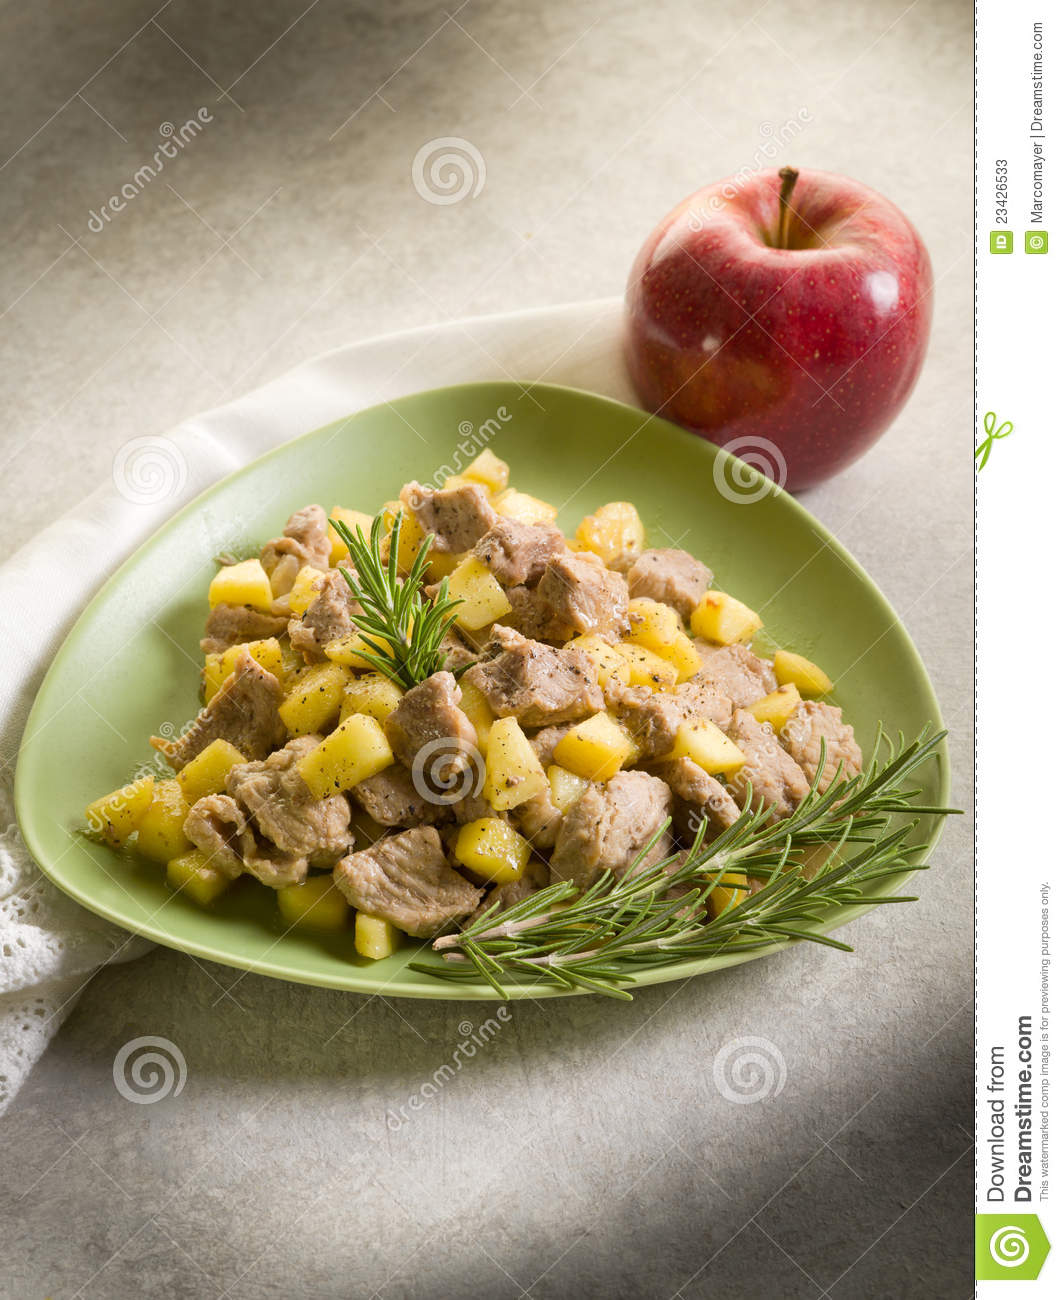 Veal stew with apple